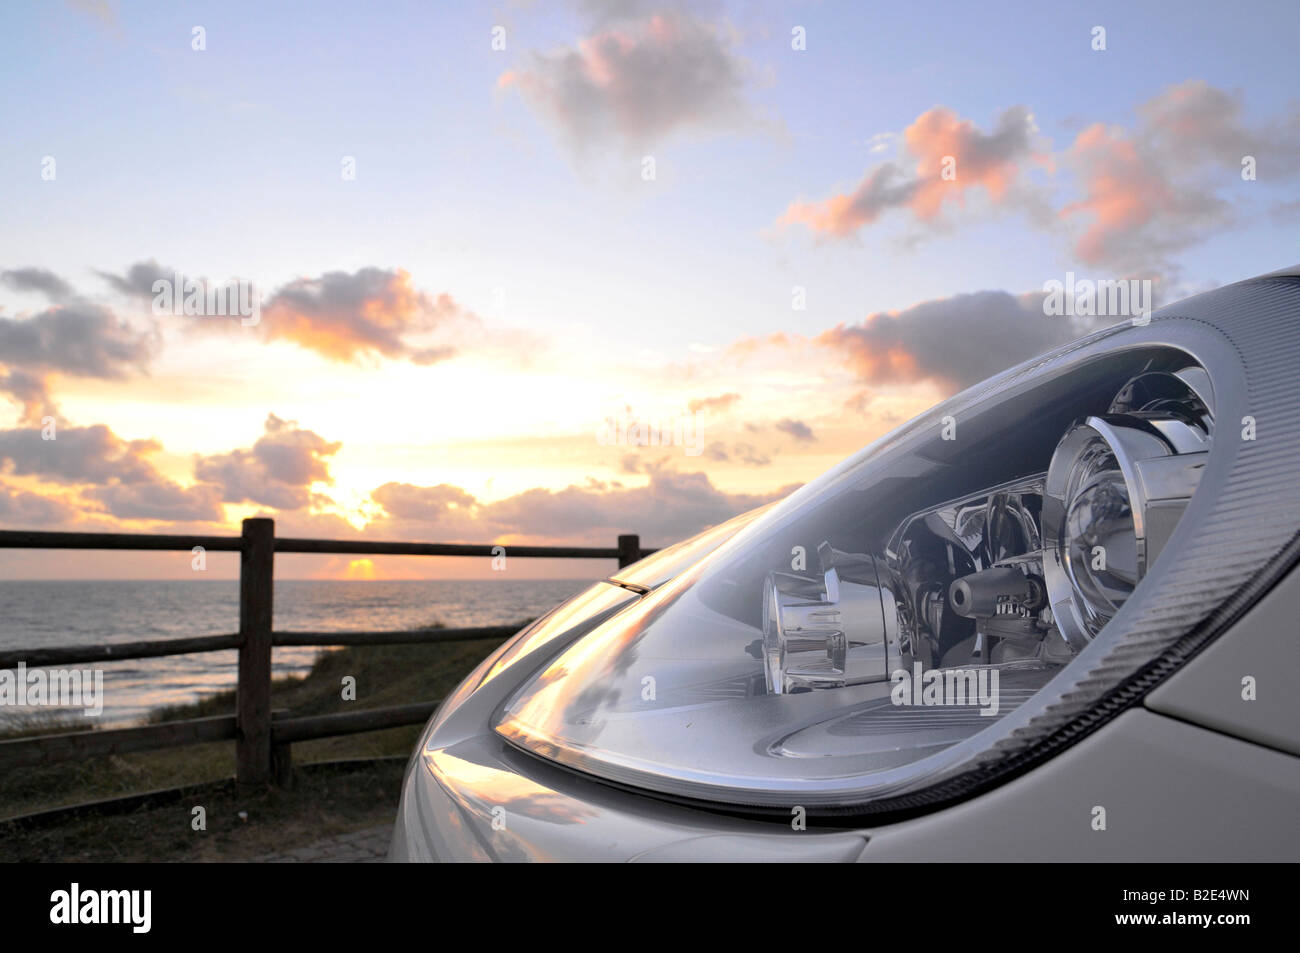 Headlamps of the PORSCHE CAYENNE GTS, detail, whit, sunset sky - Stock Image